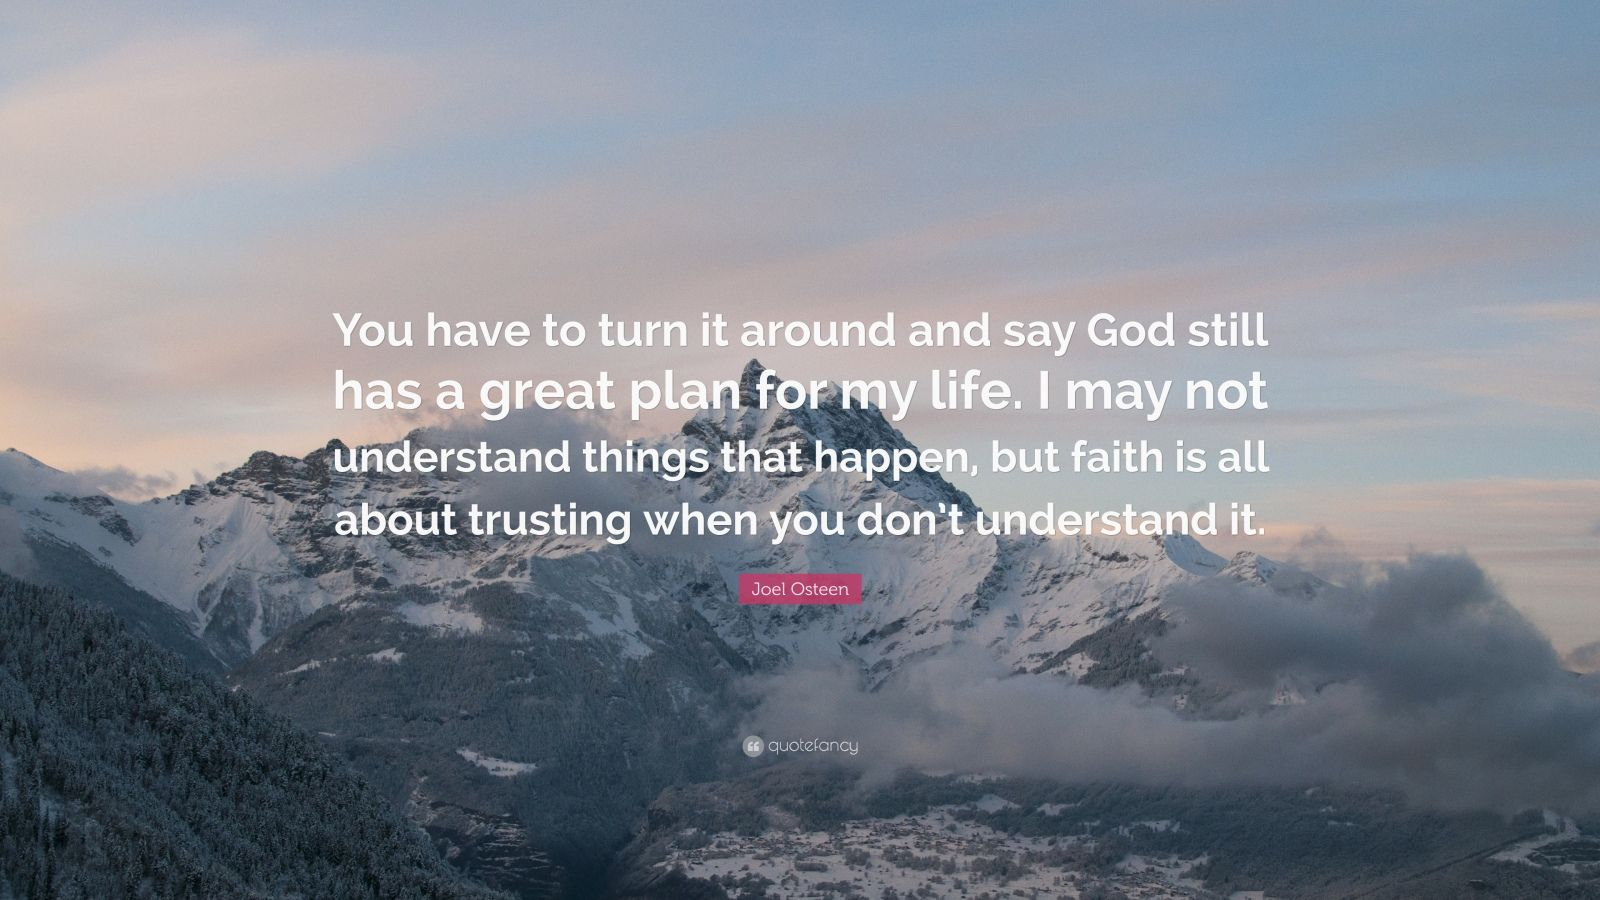 "Joel Osteen Quote: ""You have to turn it around and say God still has a great plan for my life. I may not understand things that happen, but faith is all about trusting when you don't understand it."""